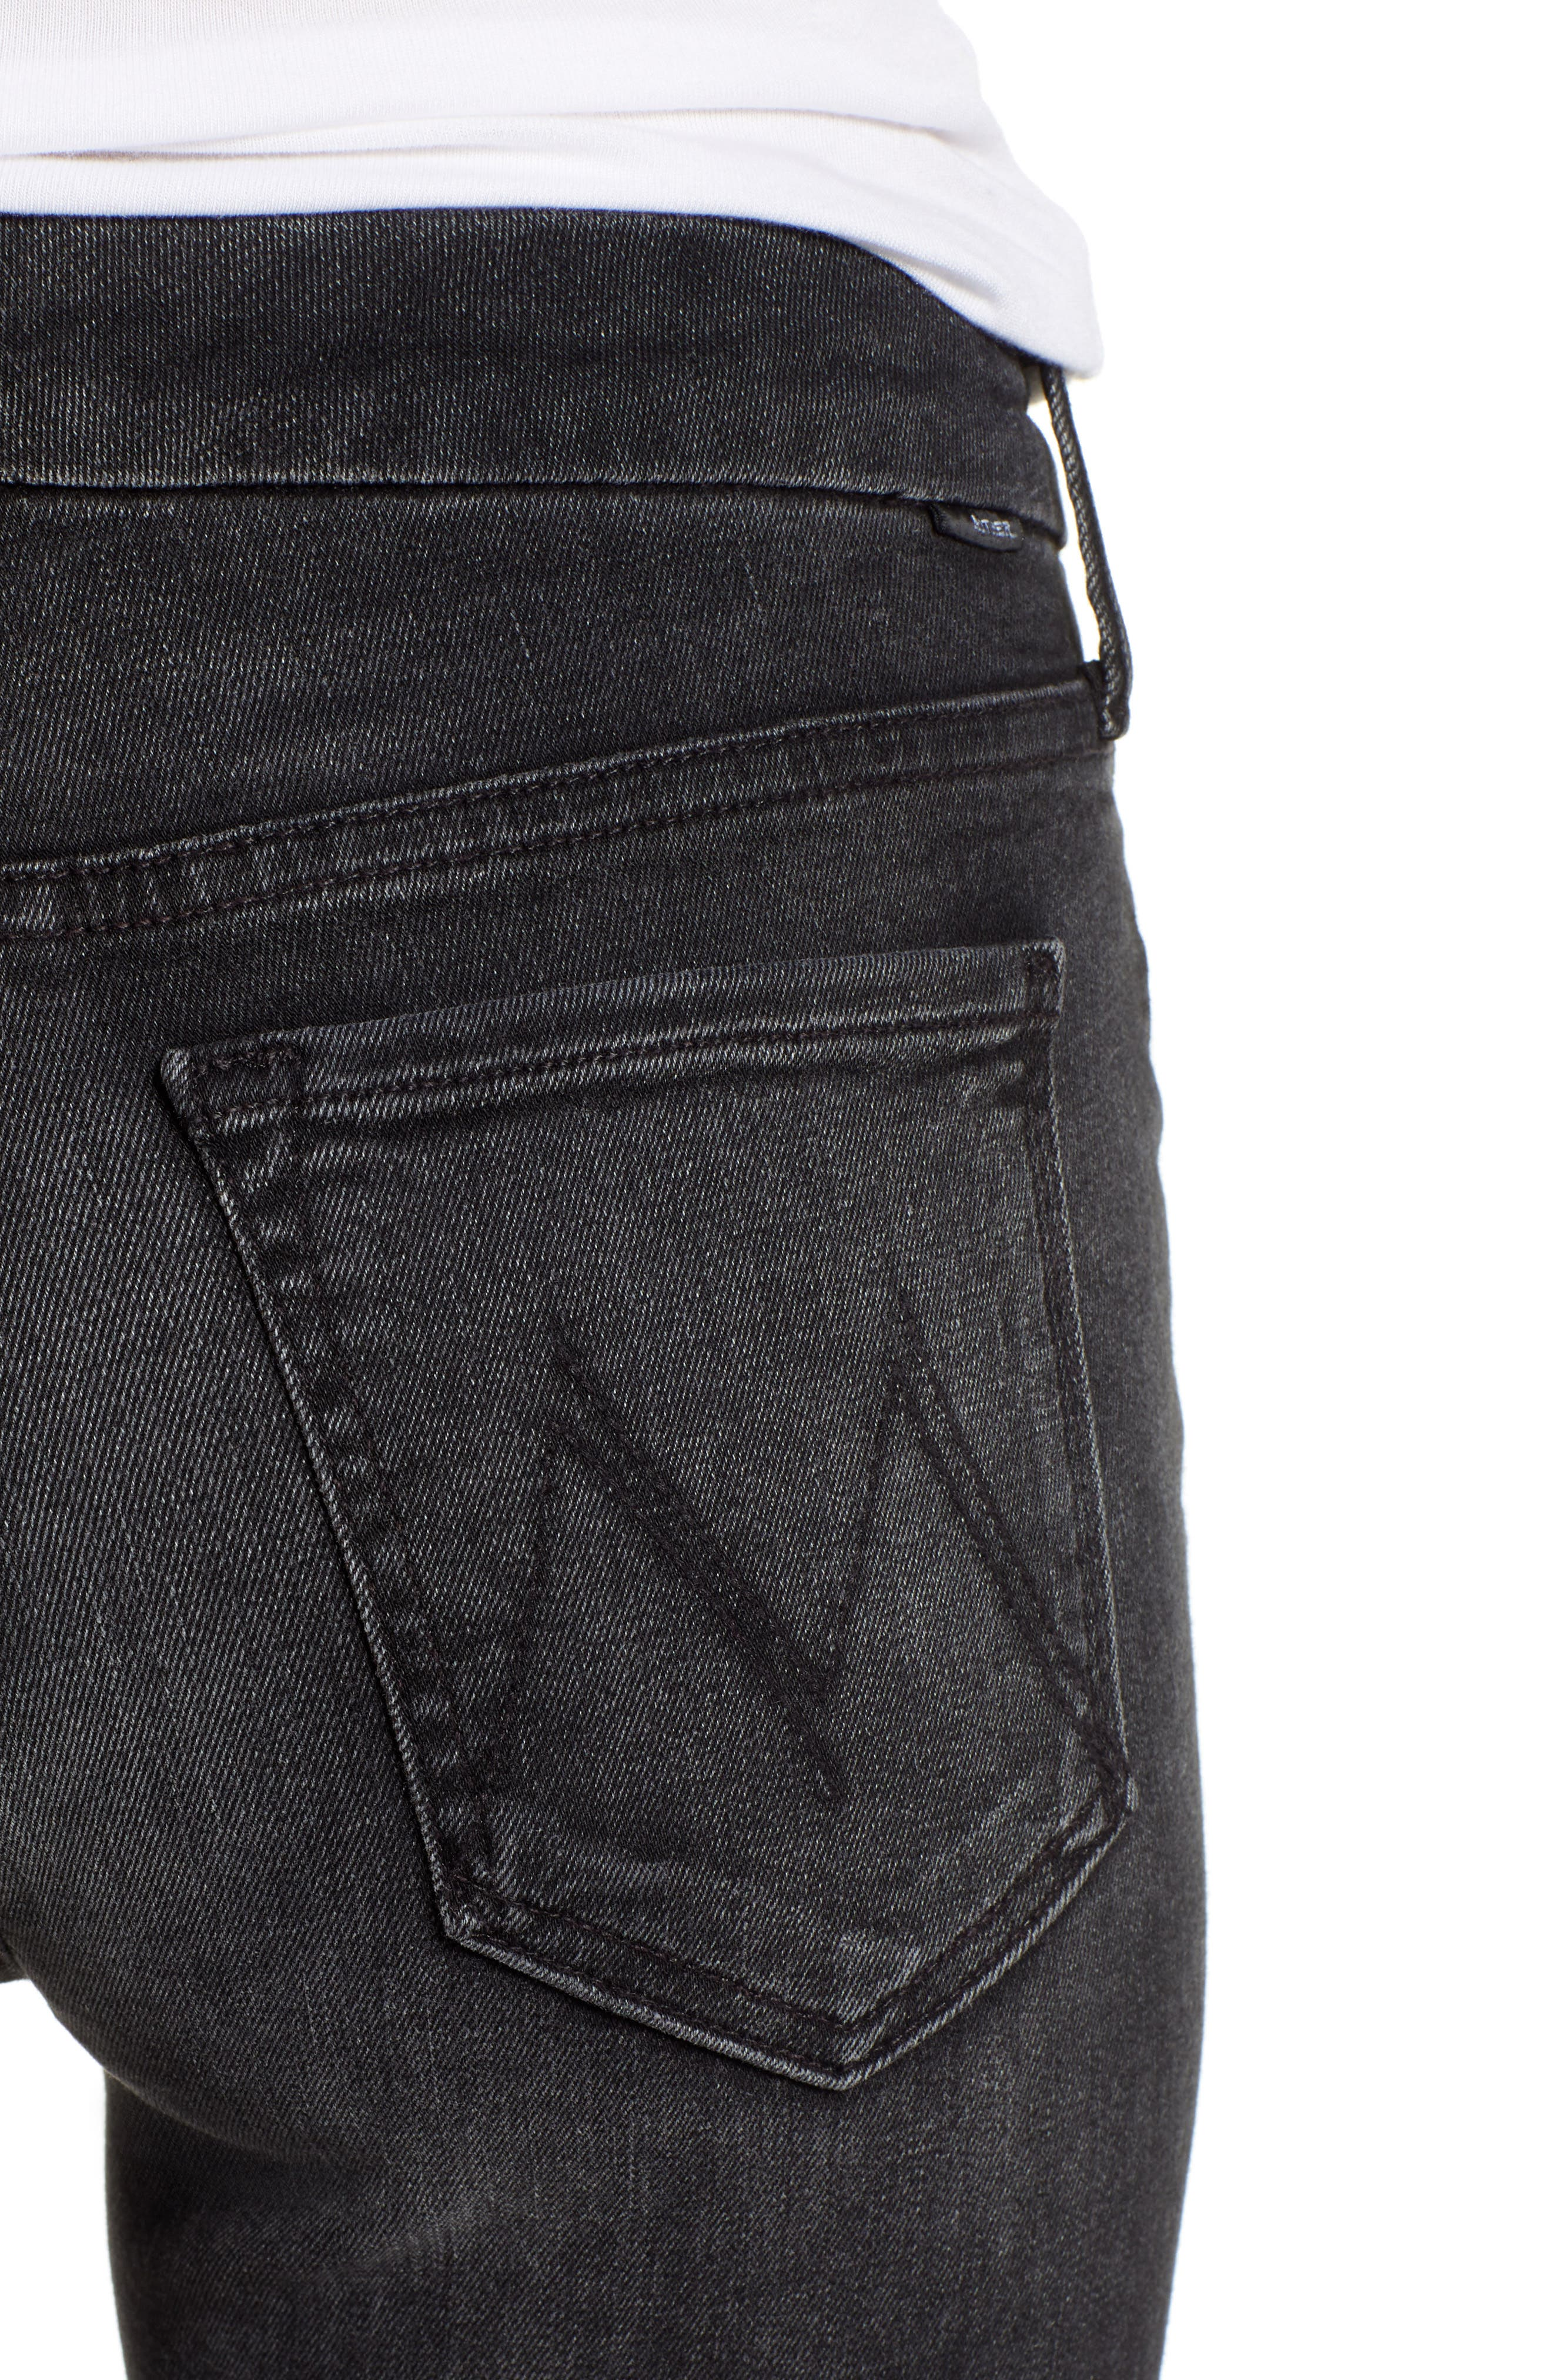 MOTHER, The Looker Mid Rise Skinny Jeans, Alternate thumbnail 5, color, 001